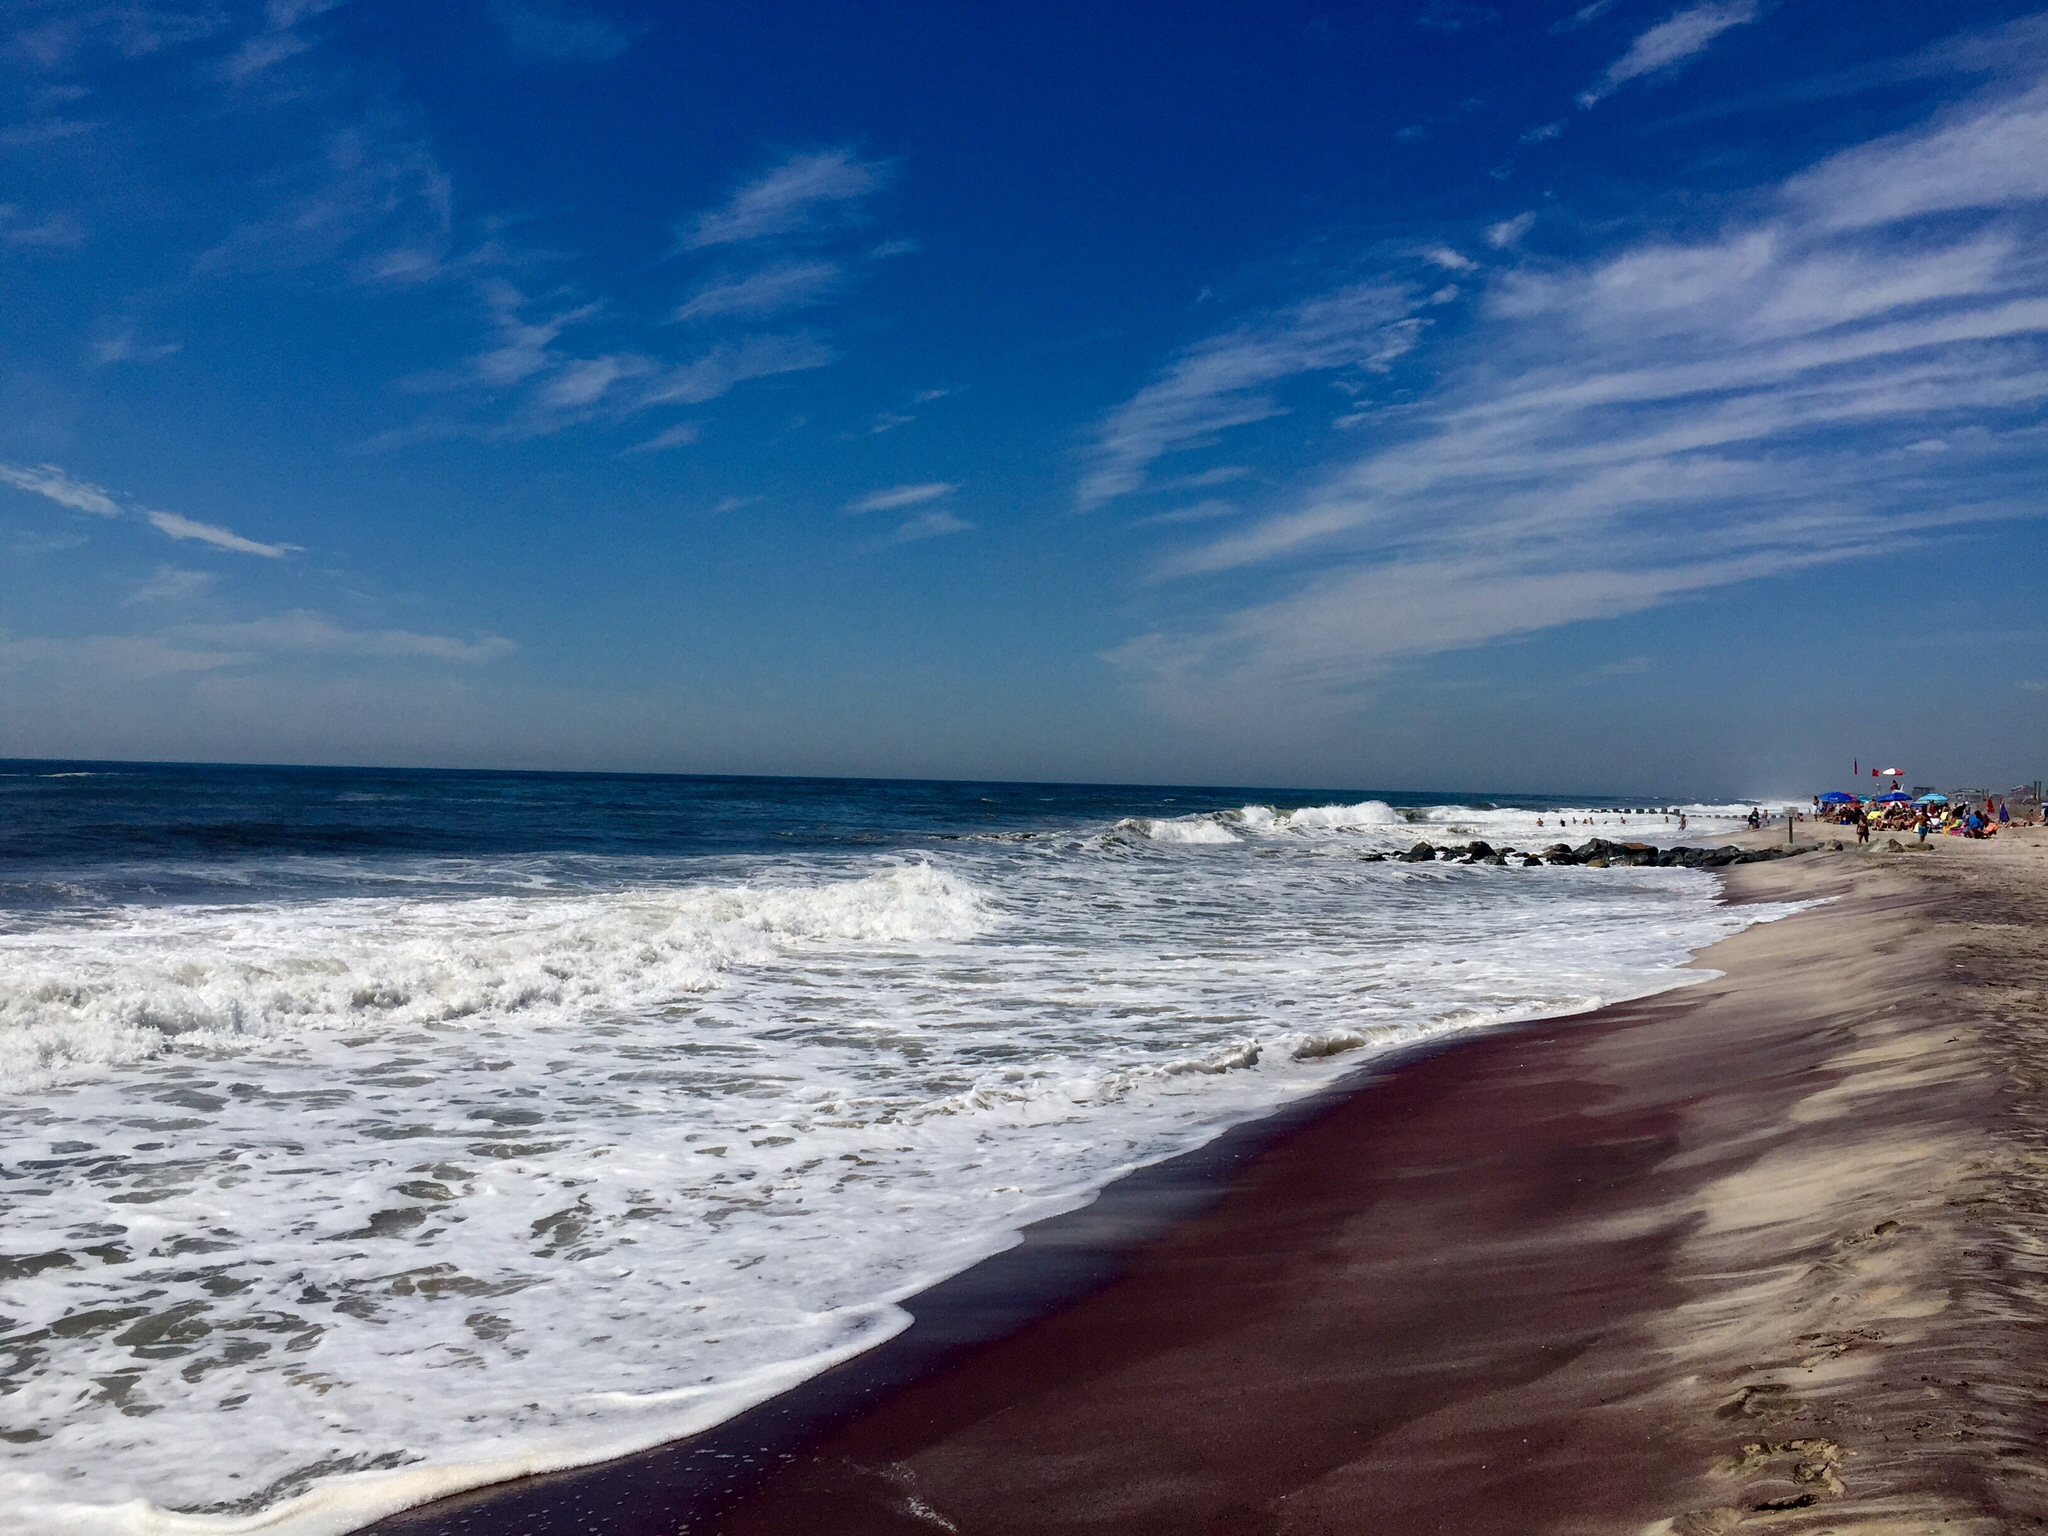 Day Trip: Ocean Beach, Fire Island